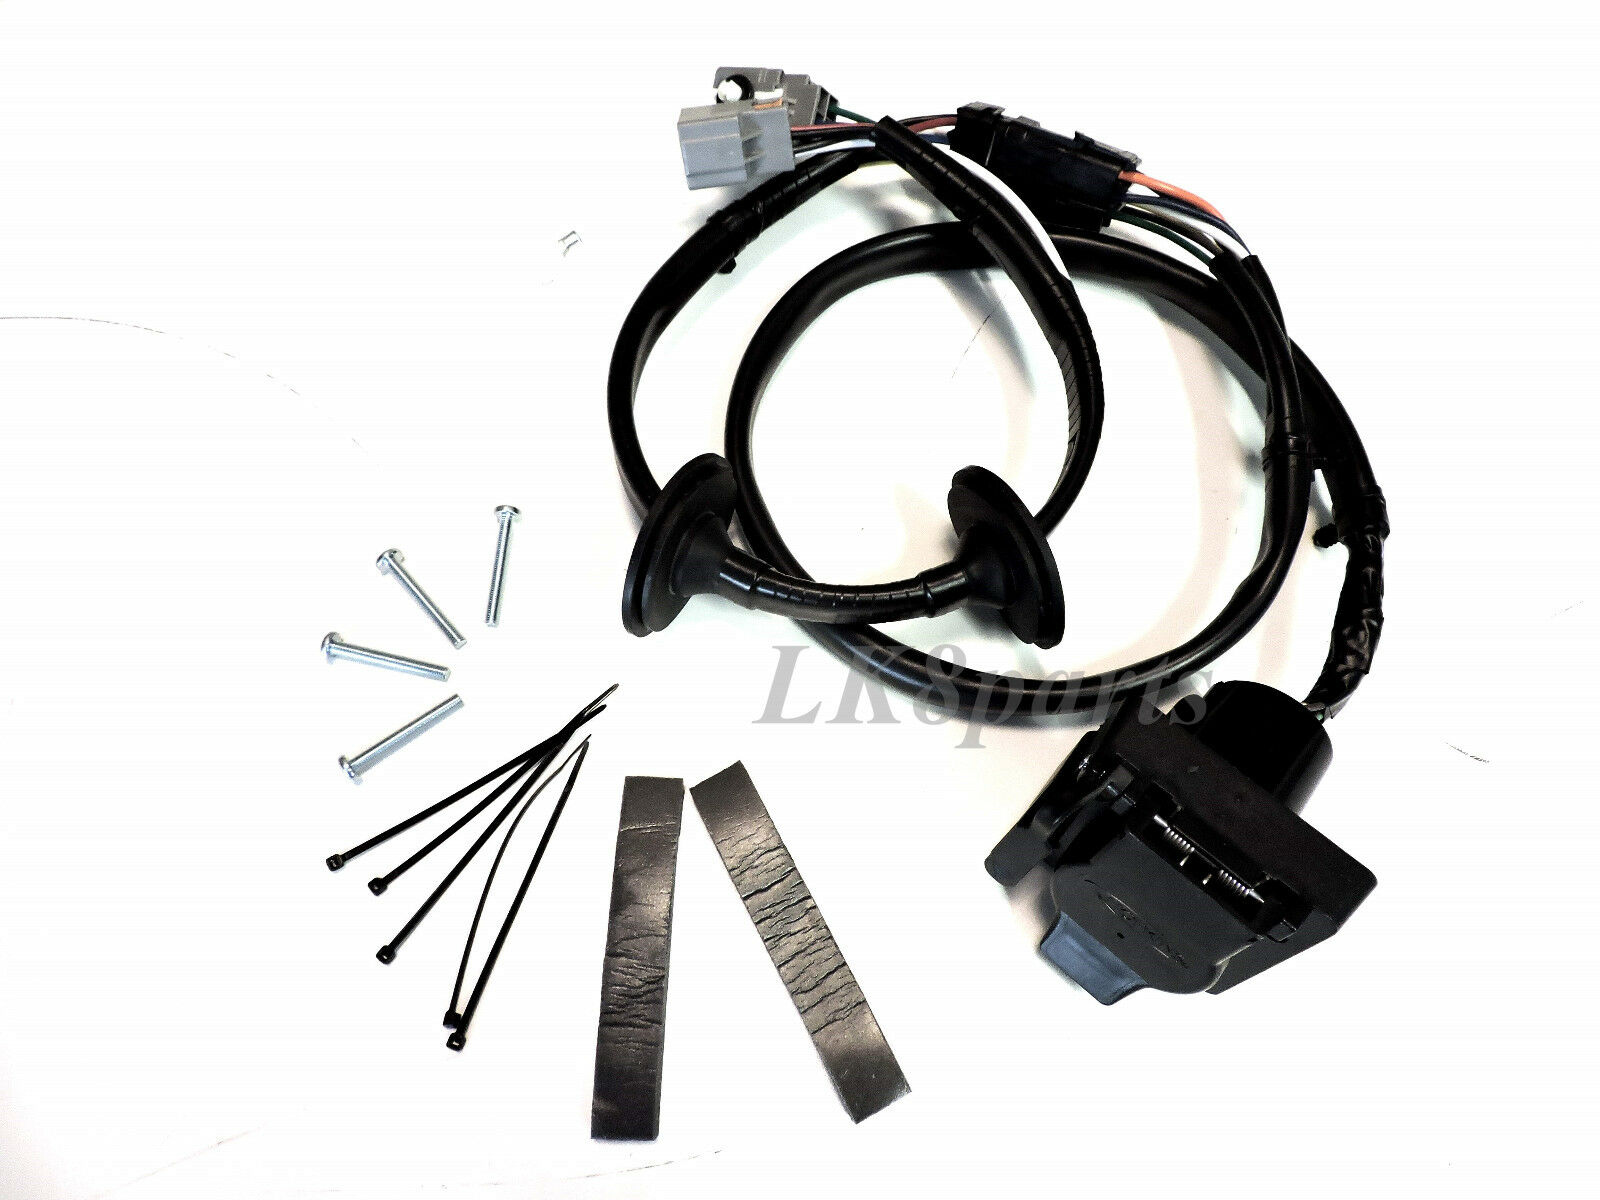 Land Rover Lr3 Trailer Wiring Harness Trailer Light Tow Electric Ywj500220 New